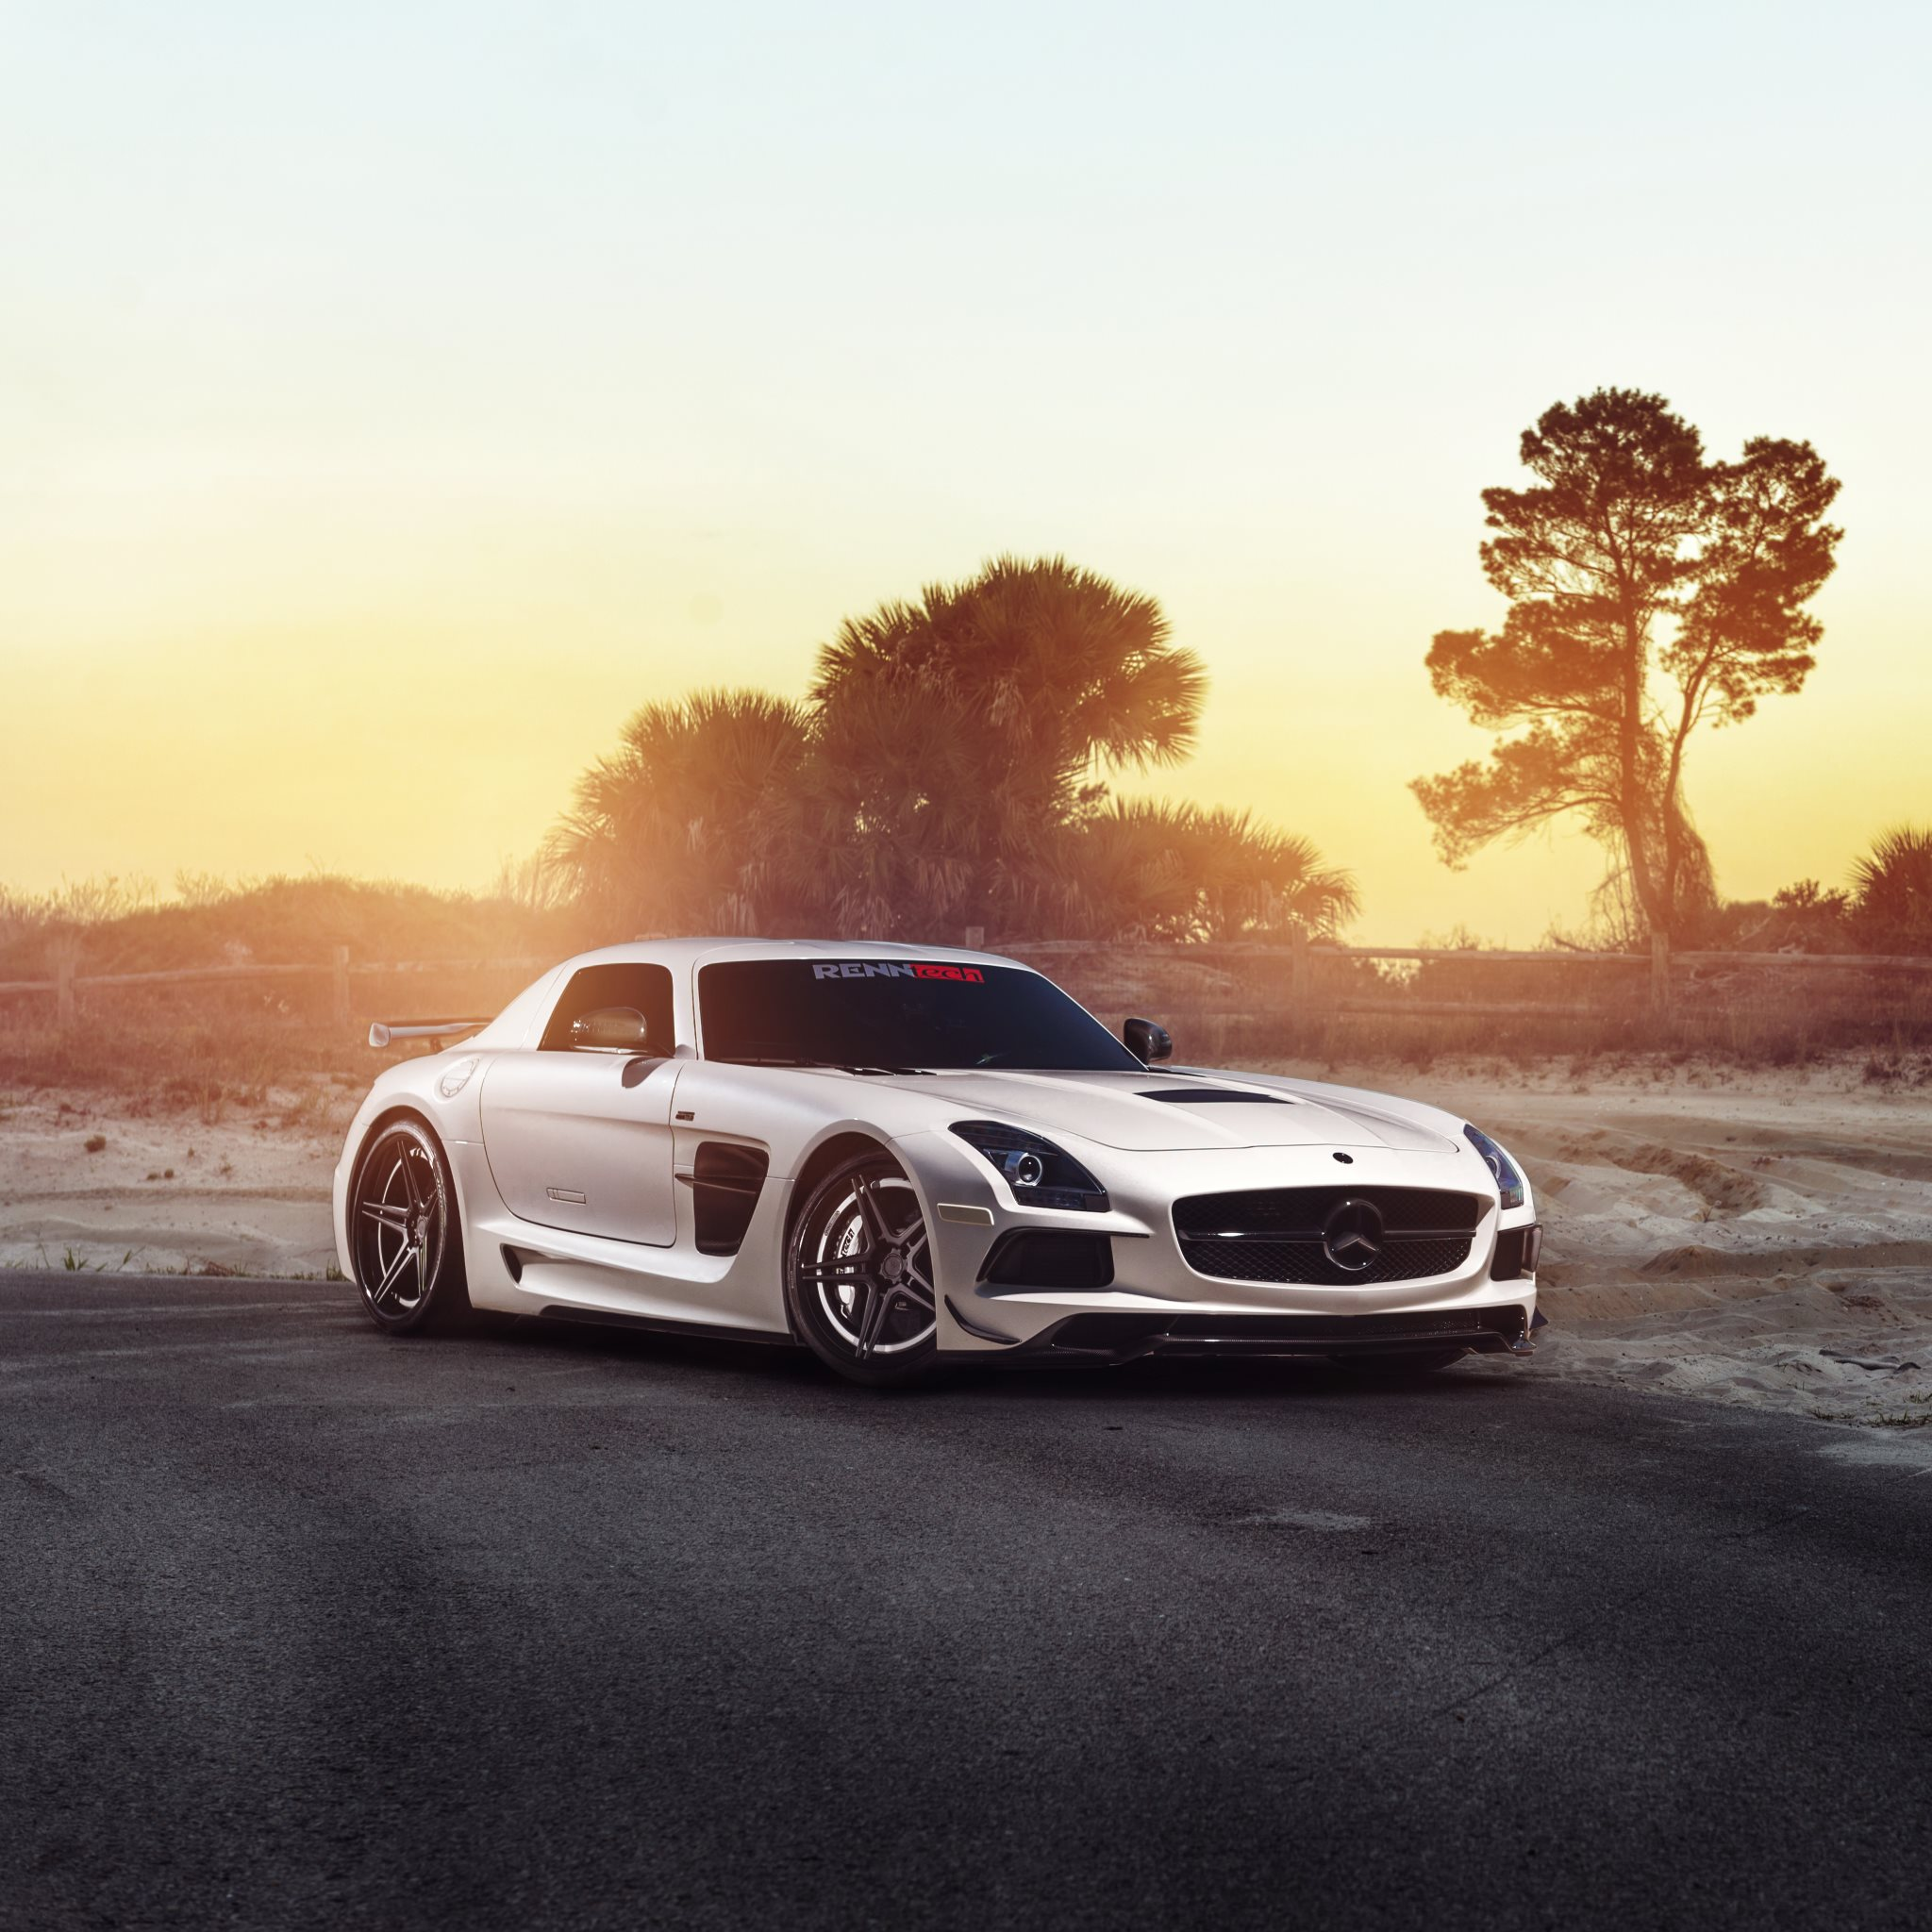 Sport Car Collections Jayde Mercedes Benz Customized: HD Wallpapers · 4K